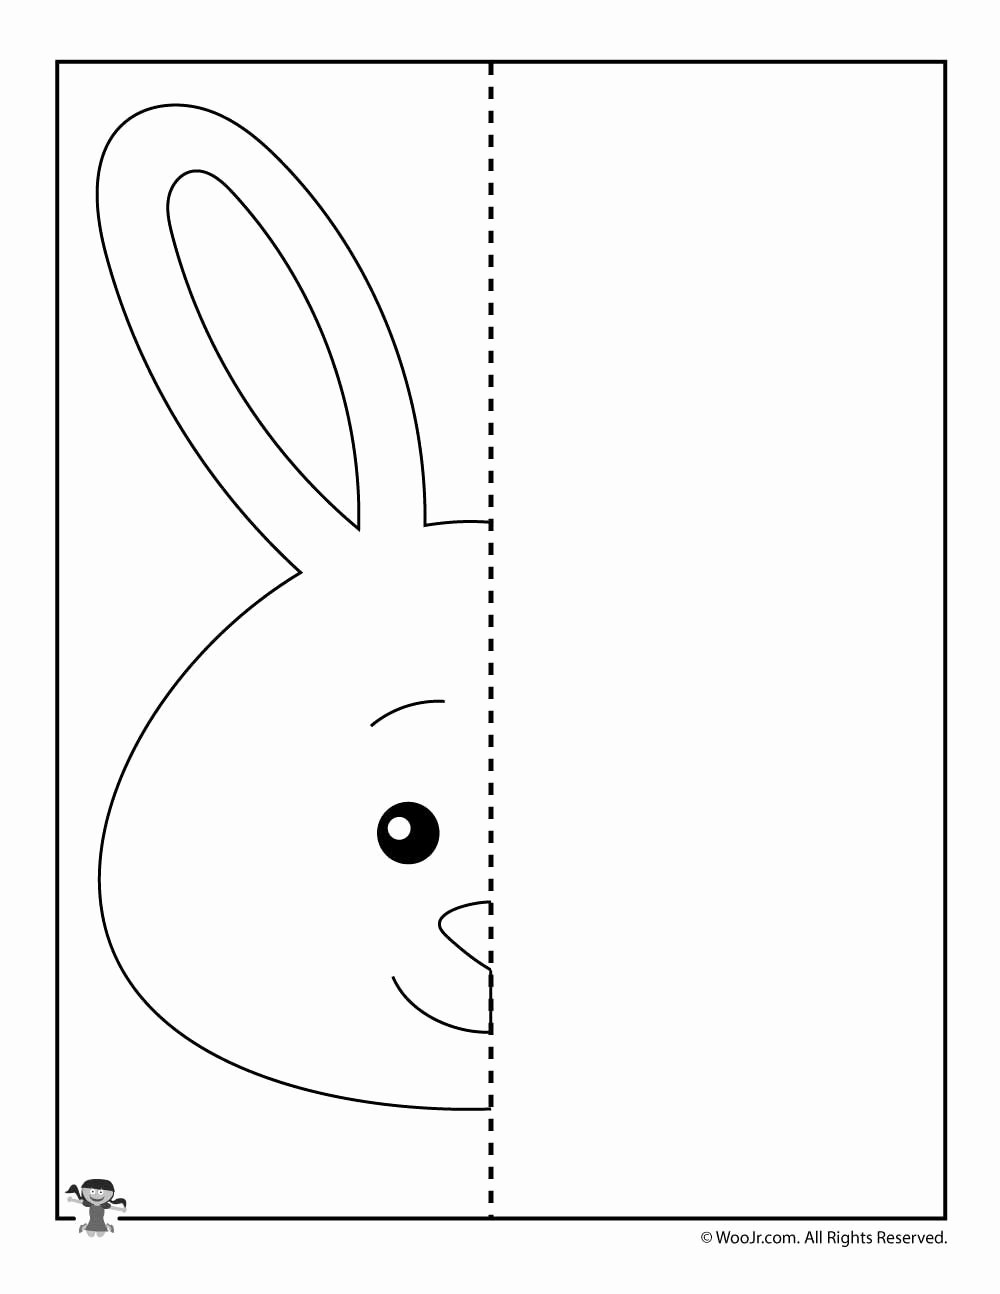 Drawing Worksheets for Preschoolers top Easter and Spring Finish the Picture Drawing Worksheets